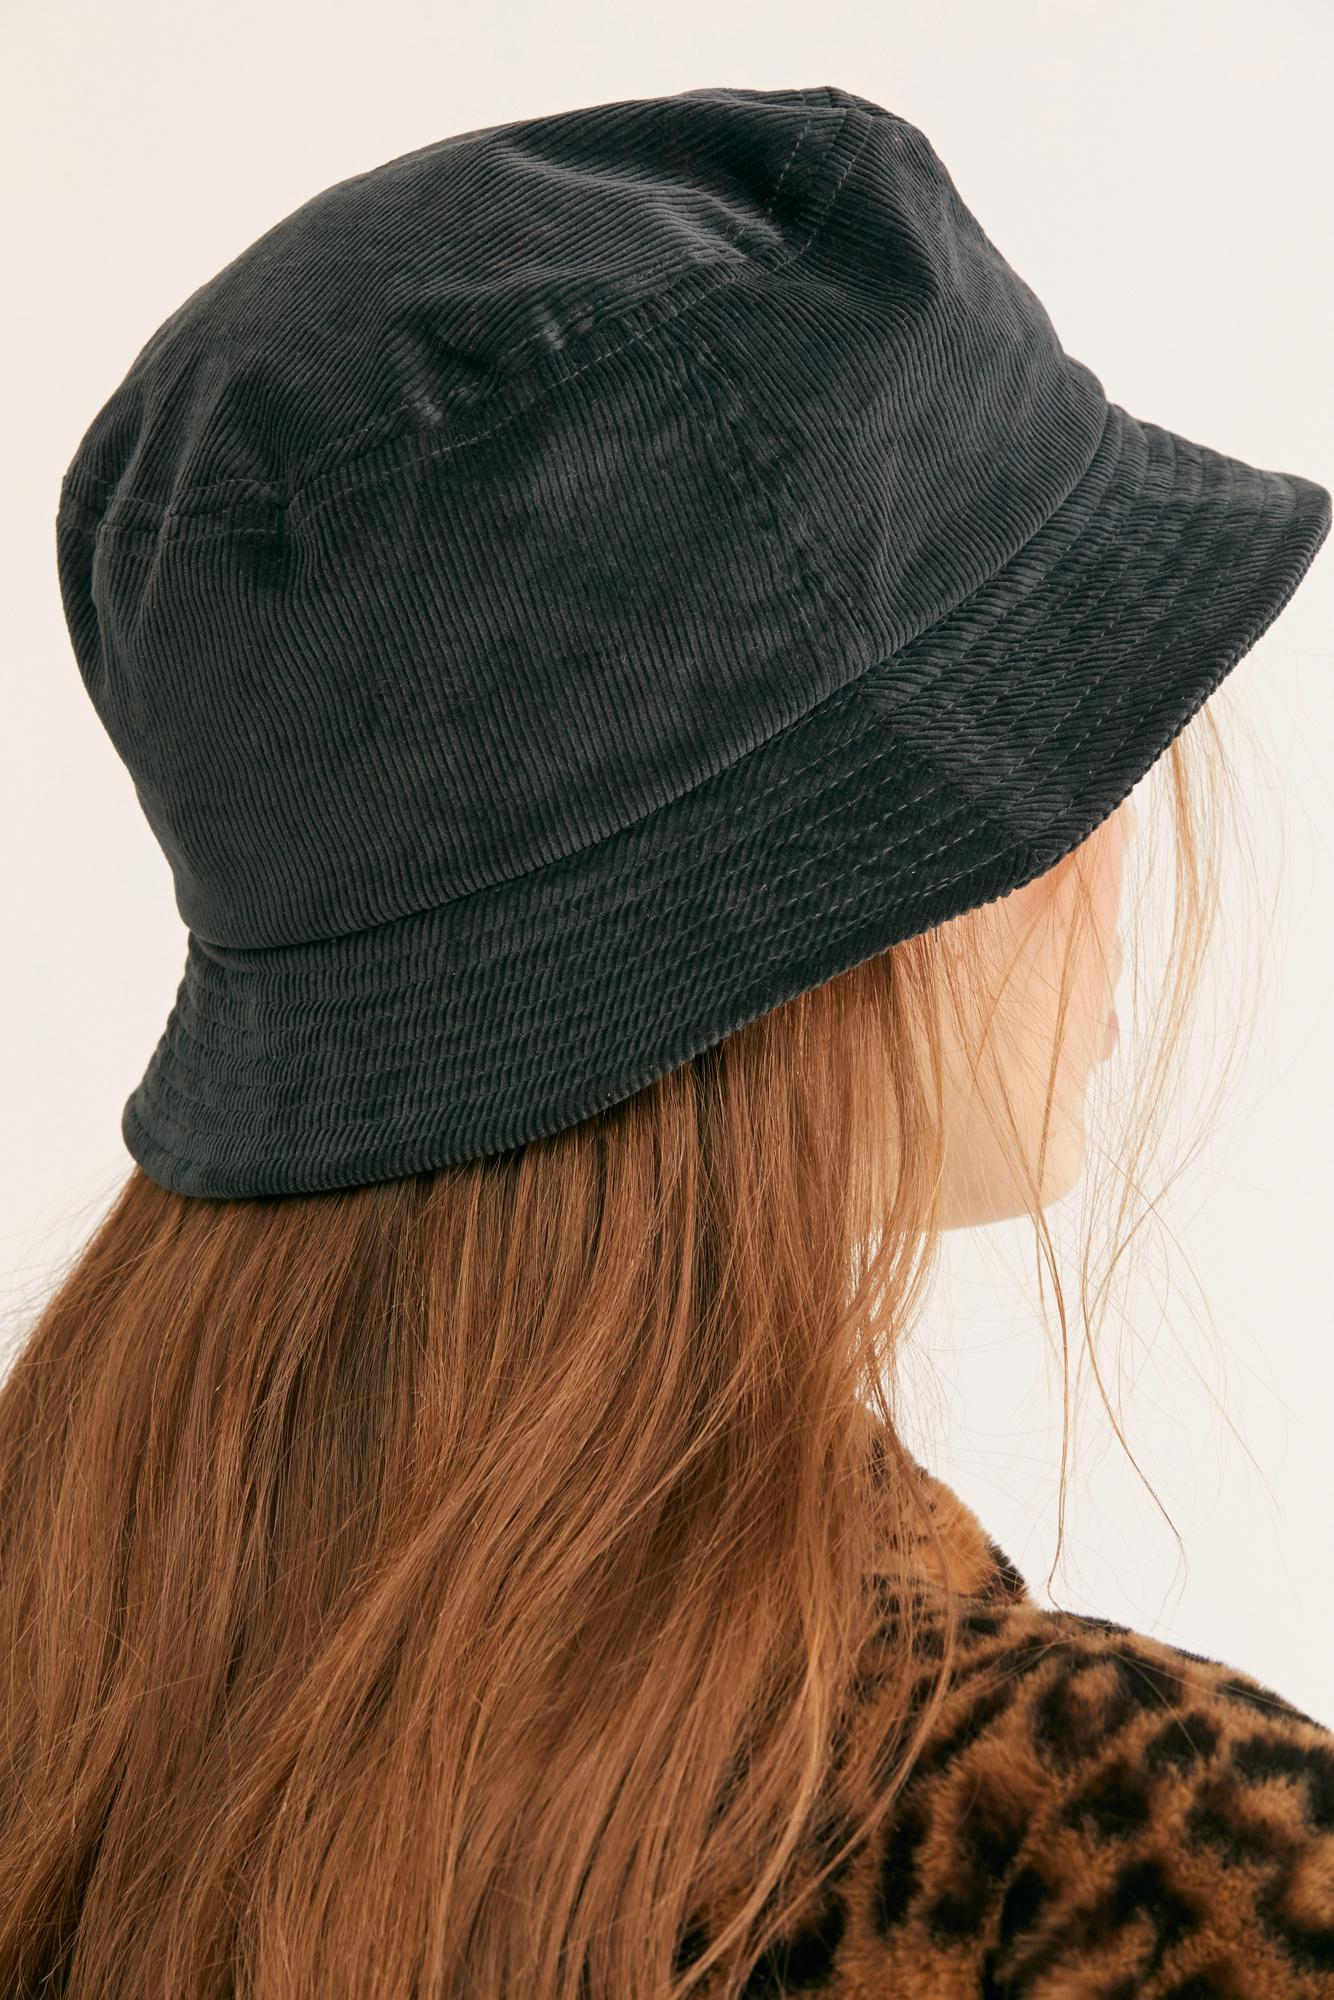 new products 2fb2a c61e3 Free People Kangol Cord Bucket Hat in Green - Lyst